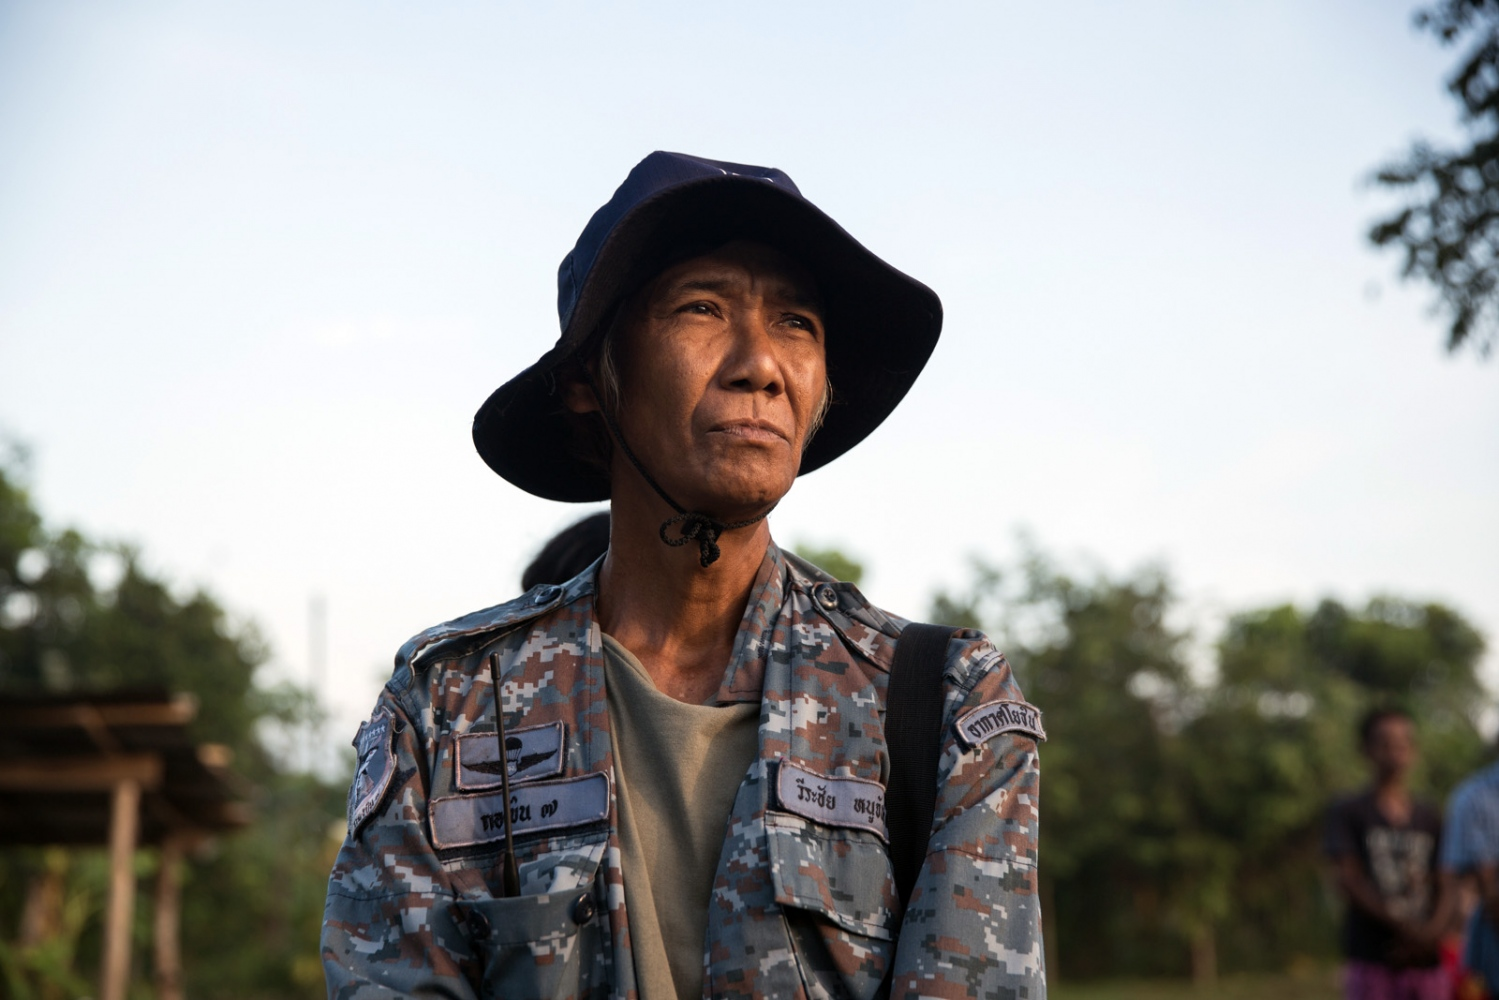 A community member of Klong Sai Pattana community stands in line during the morning role-call. The village is part of the Southern Peasant Federation of Thailand (SPFT) and has fought for a community land rights title for the last decade. Whilst the community is close to achieving its goal they remain alert and prepared for any eventuality having already seen 4 of their community members killed during their struggle.  Surat Thani Province, Thailand